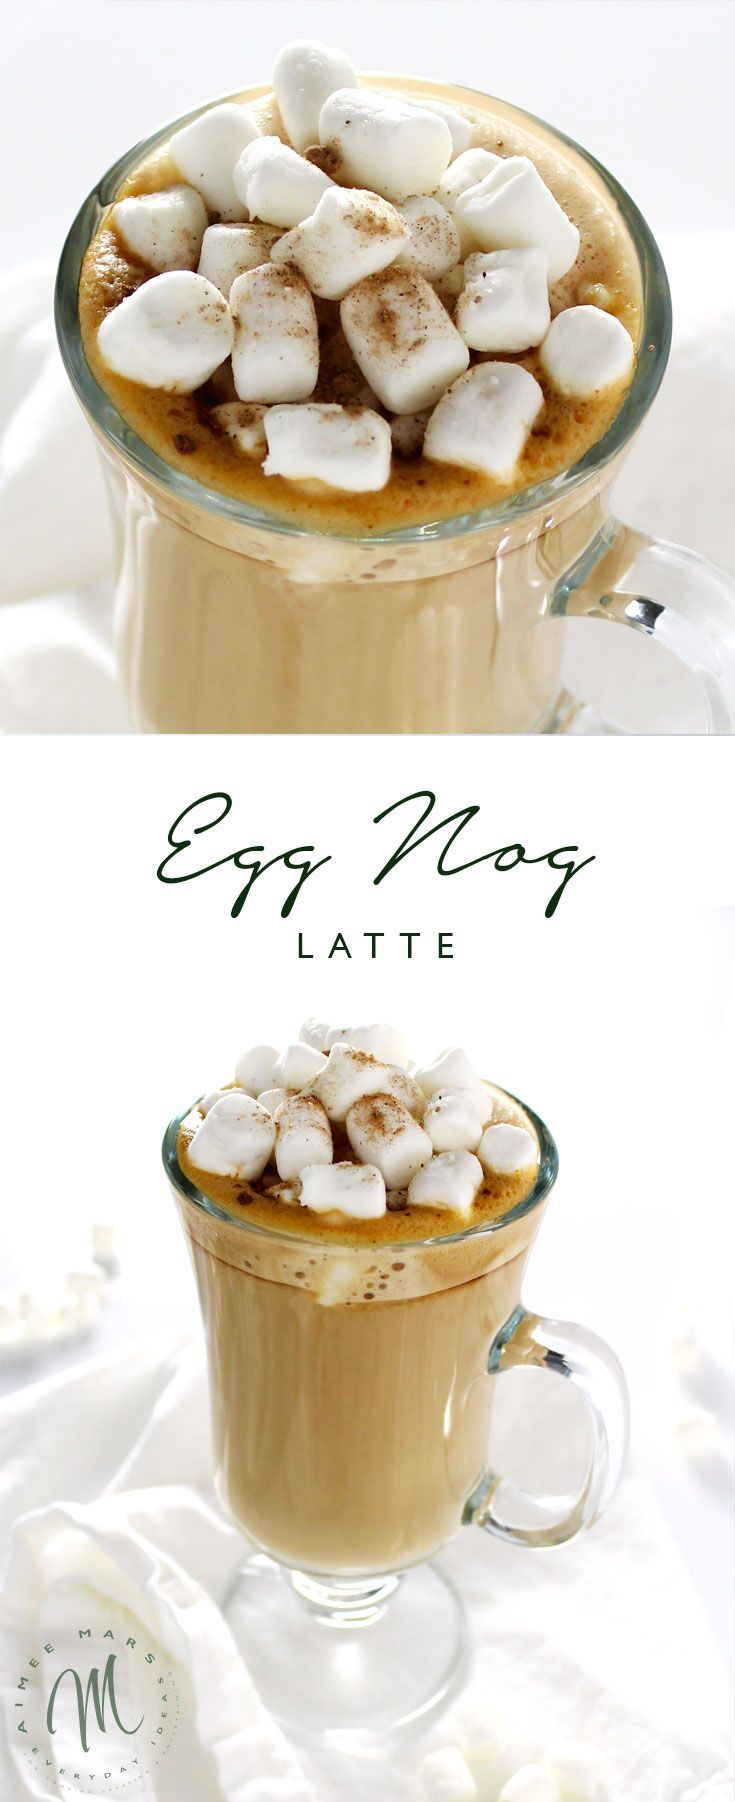 This decadent Egg Nog Latte recipe is so easy to make you could do it in your sleep every morning and the perfect treat to sip while opening holiday gifts.